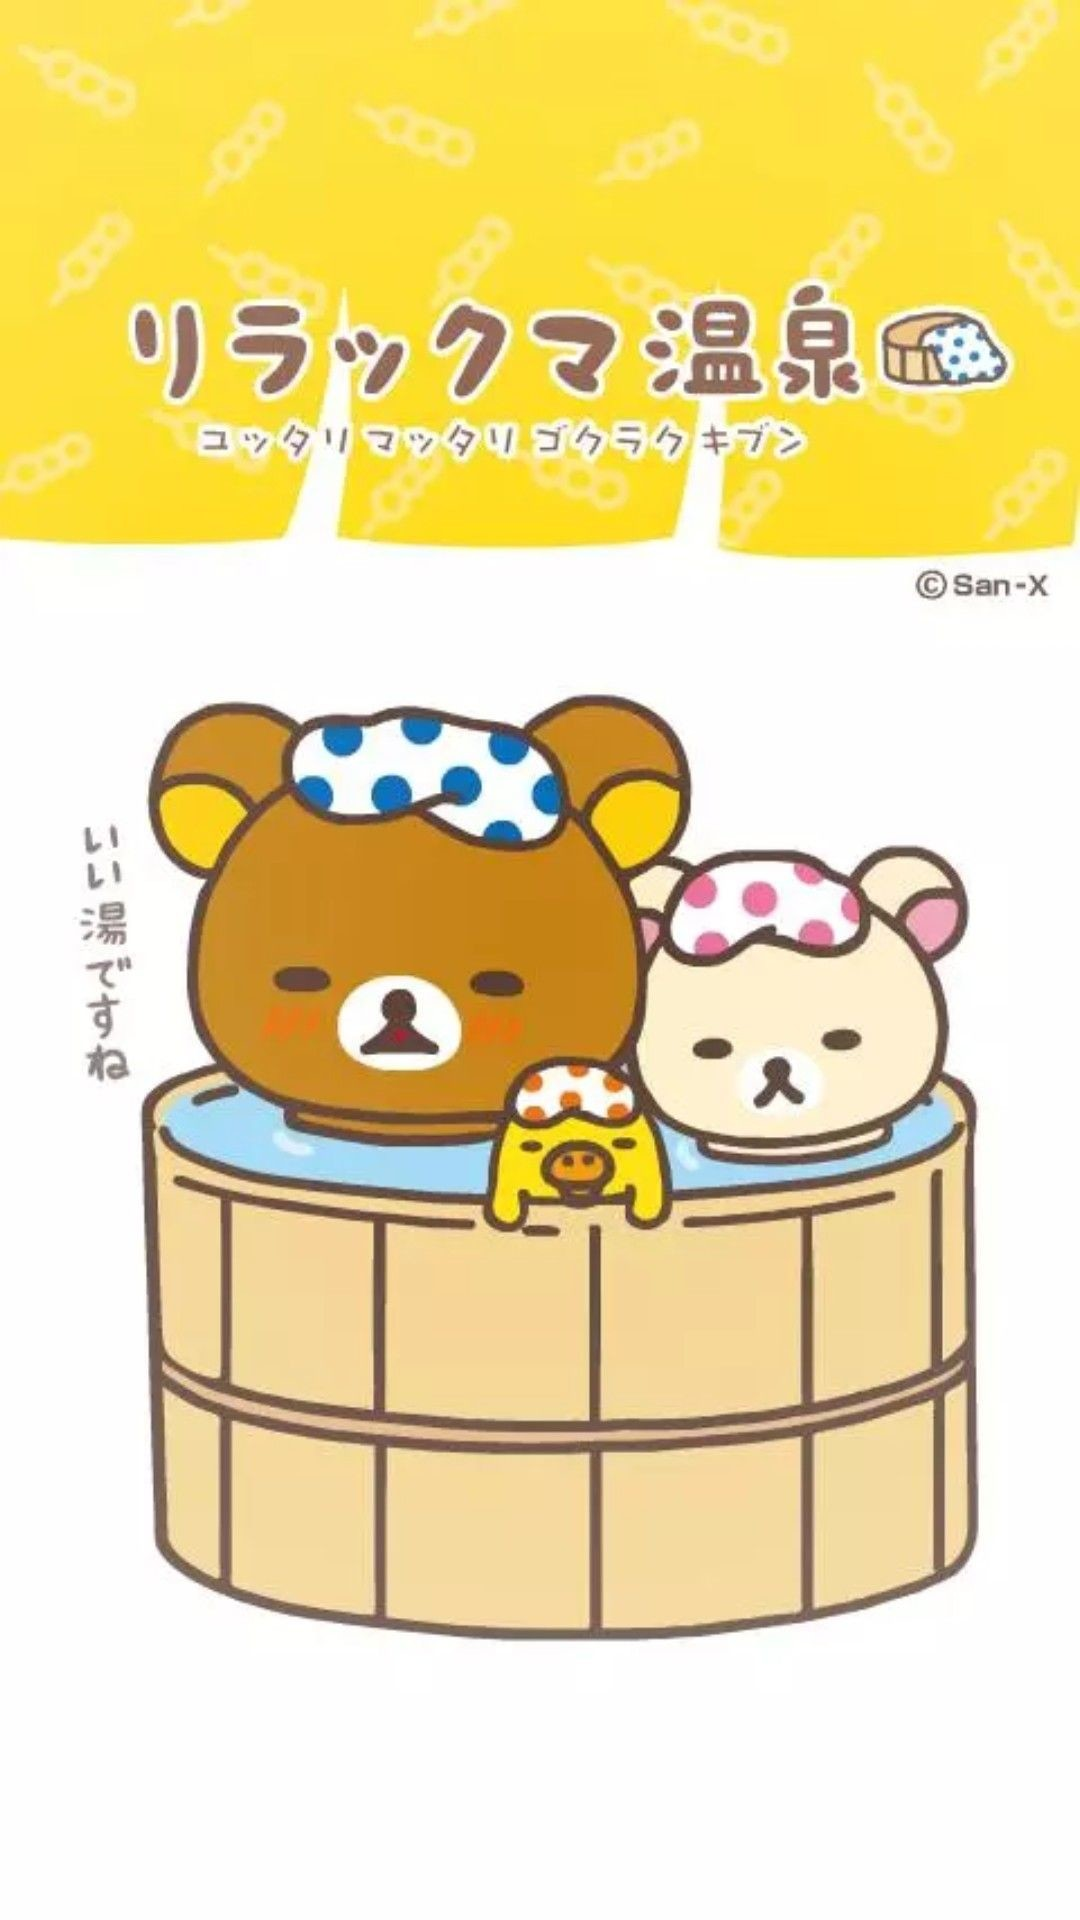 Res: 1080x1920, Rilakkuma Wallpaper, Iphone Wallpapers, December, Iphone Backgrounds